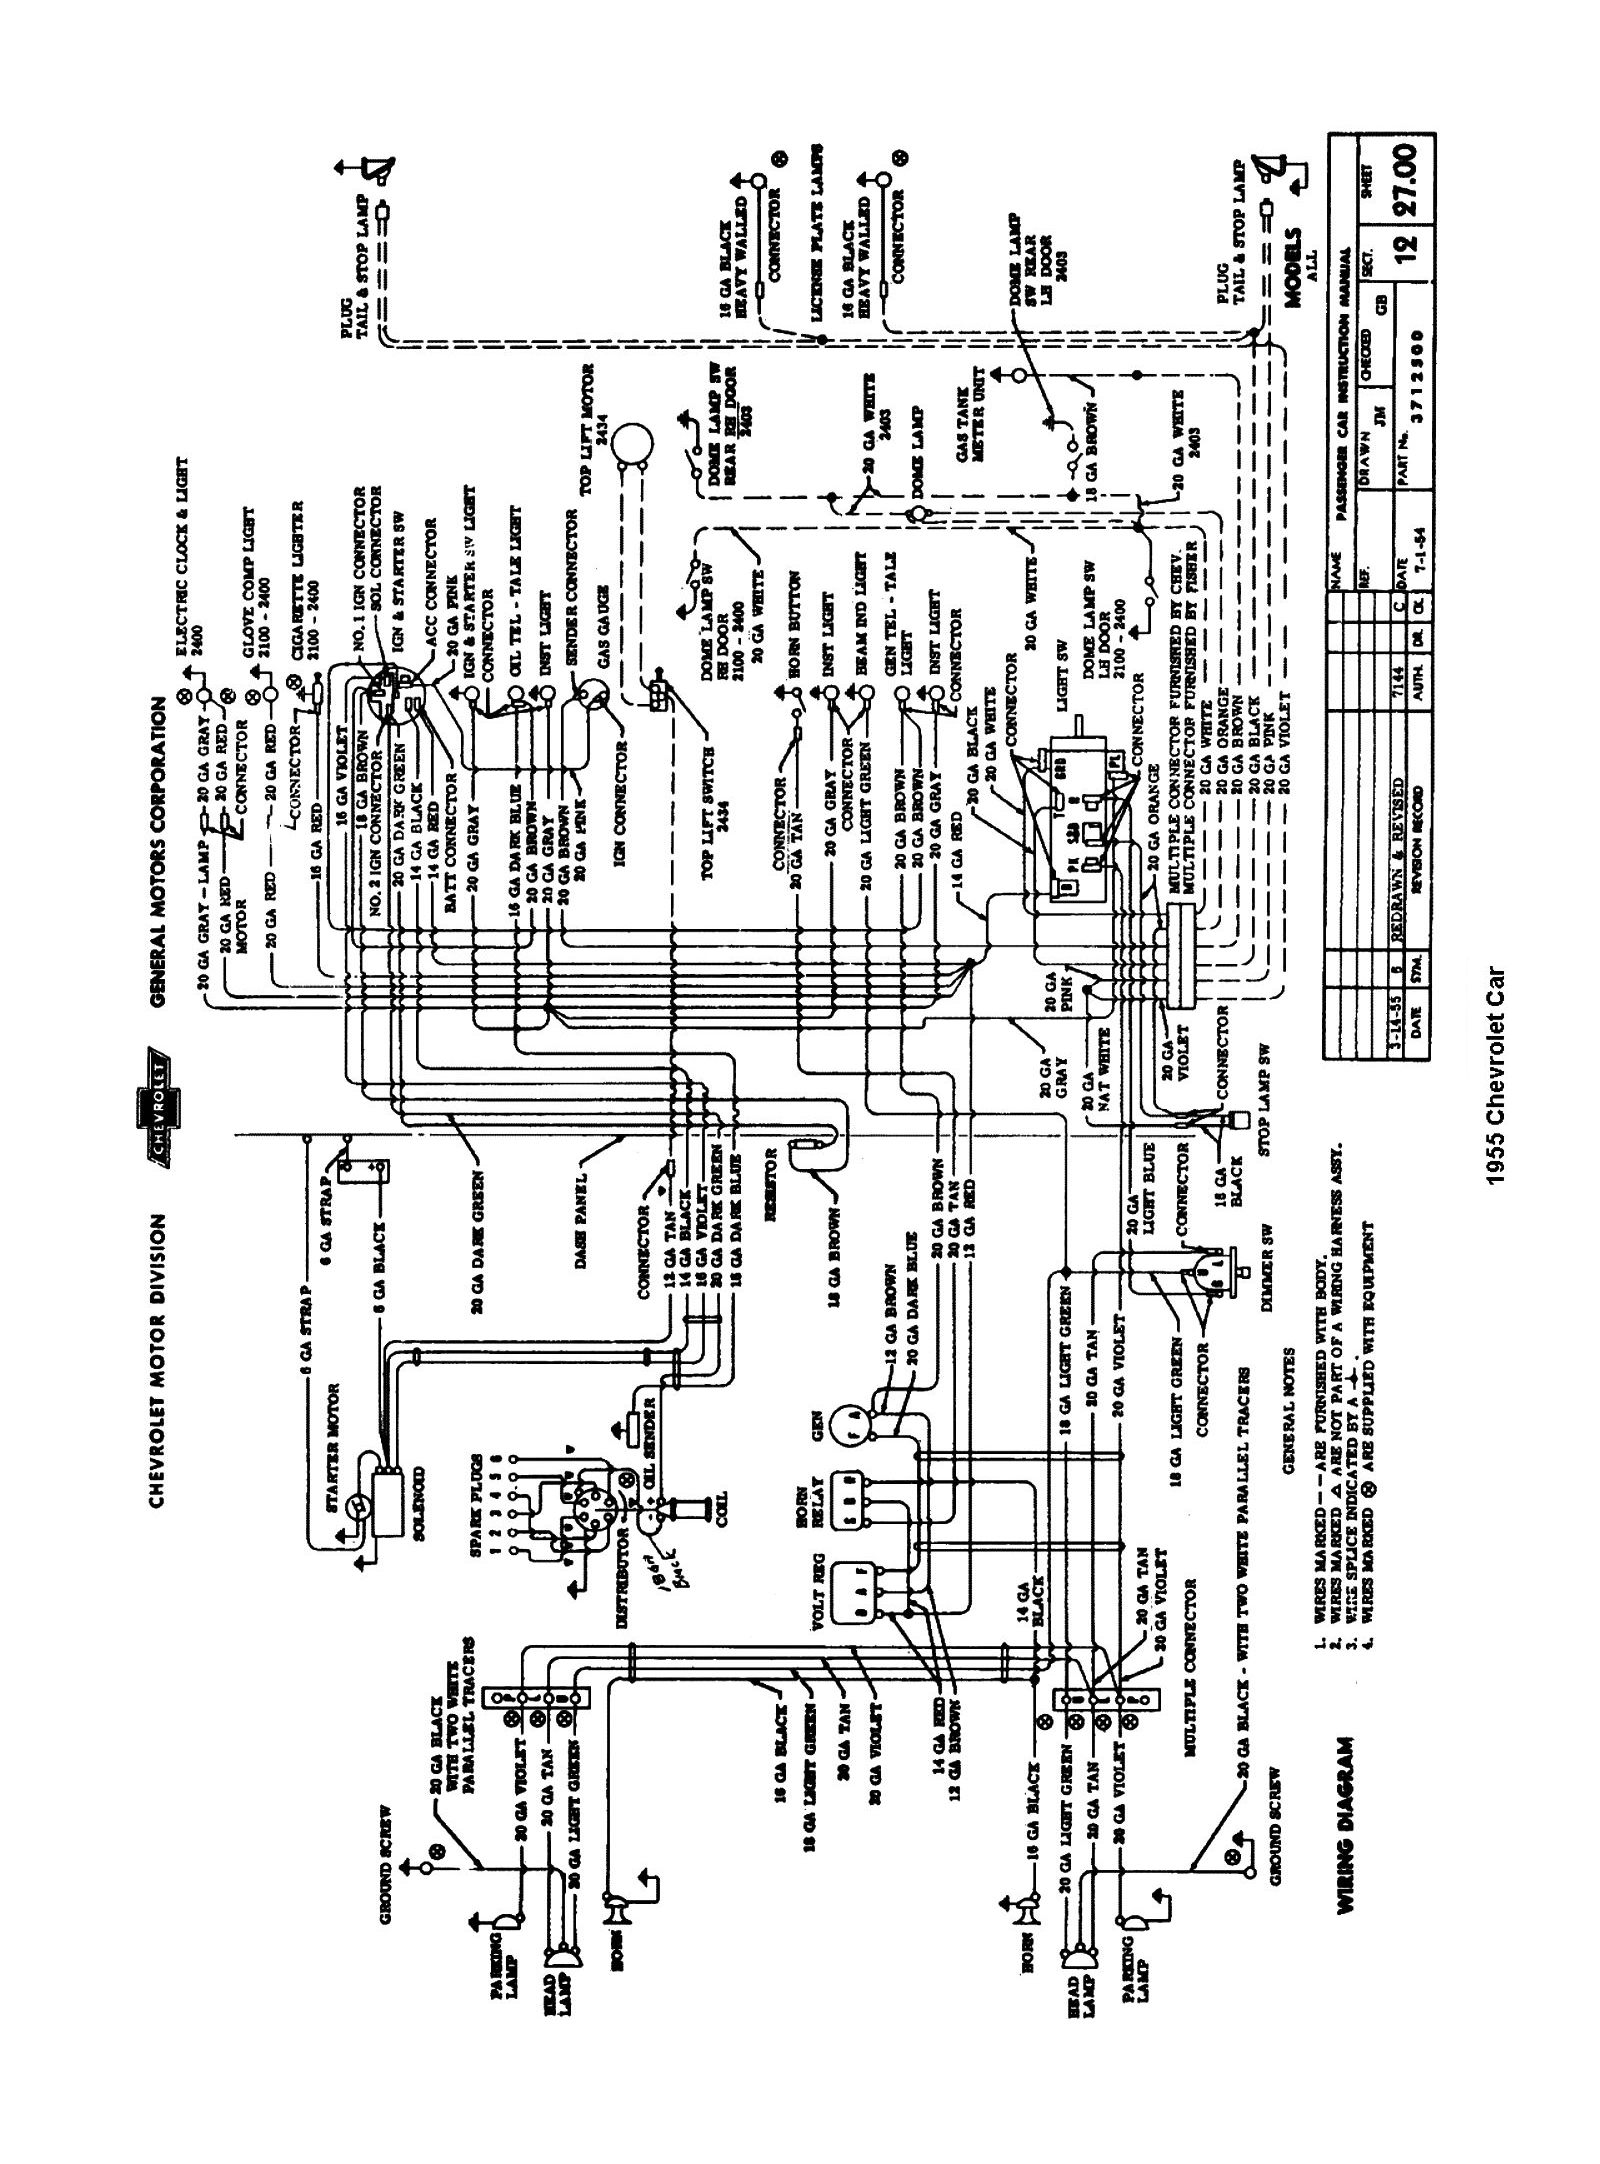 Perkins Marine Wiring Diagram Free Download Wiring Diagram Schematic